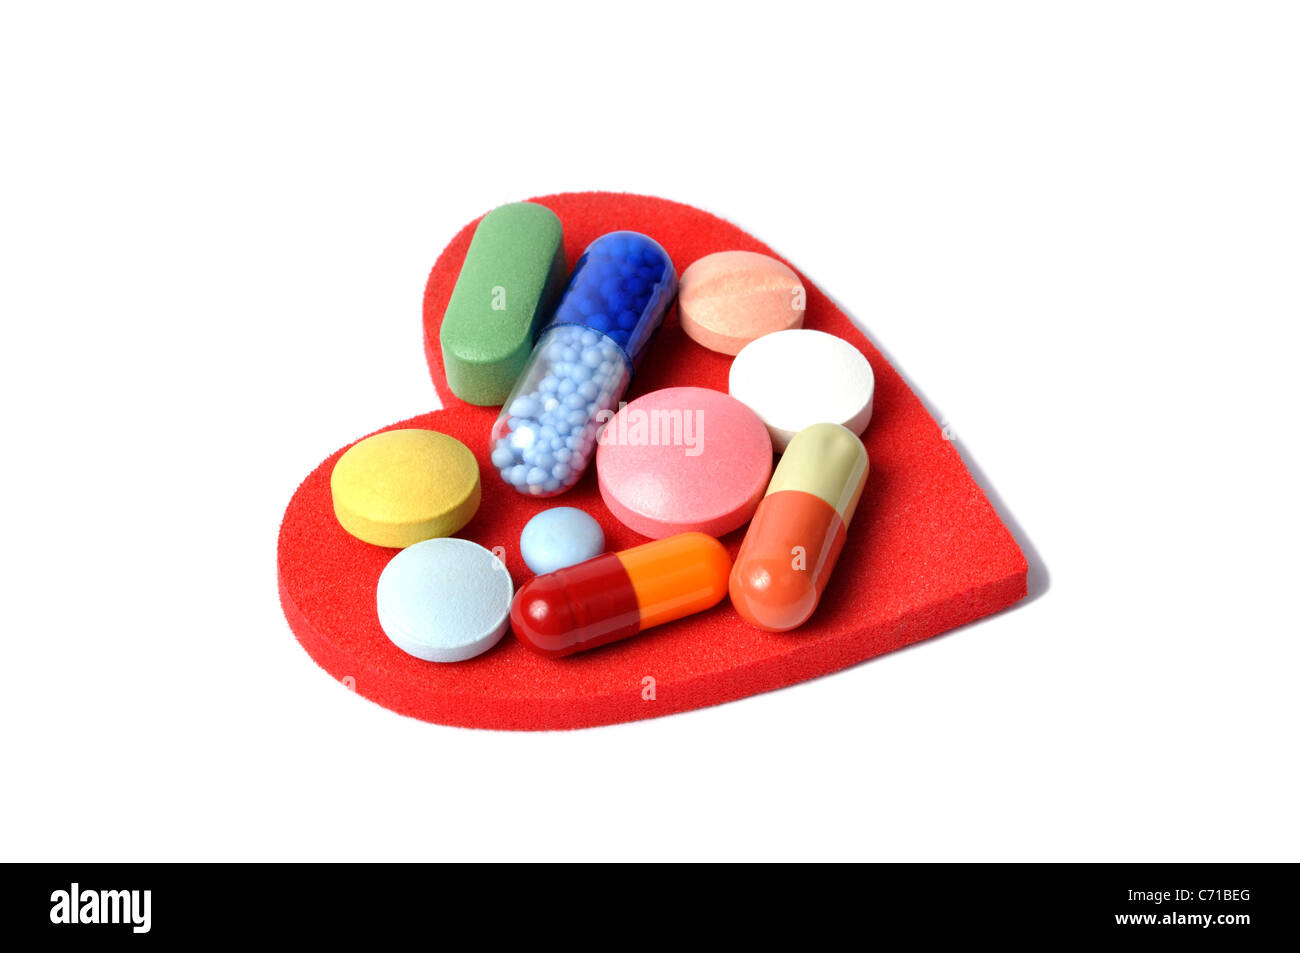 Heart and Pills - Stock Image